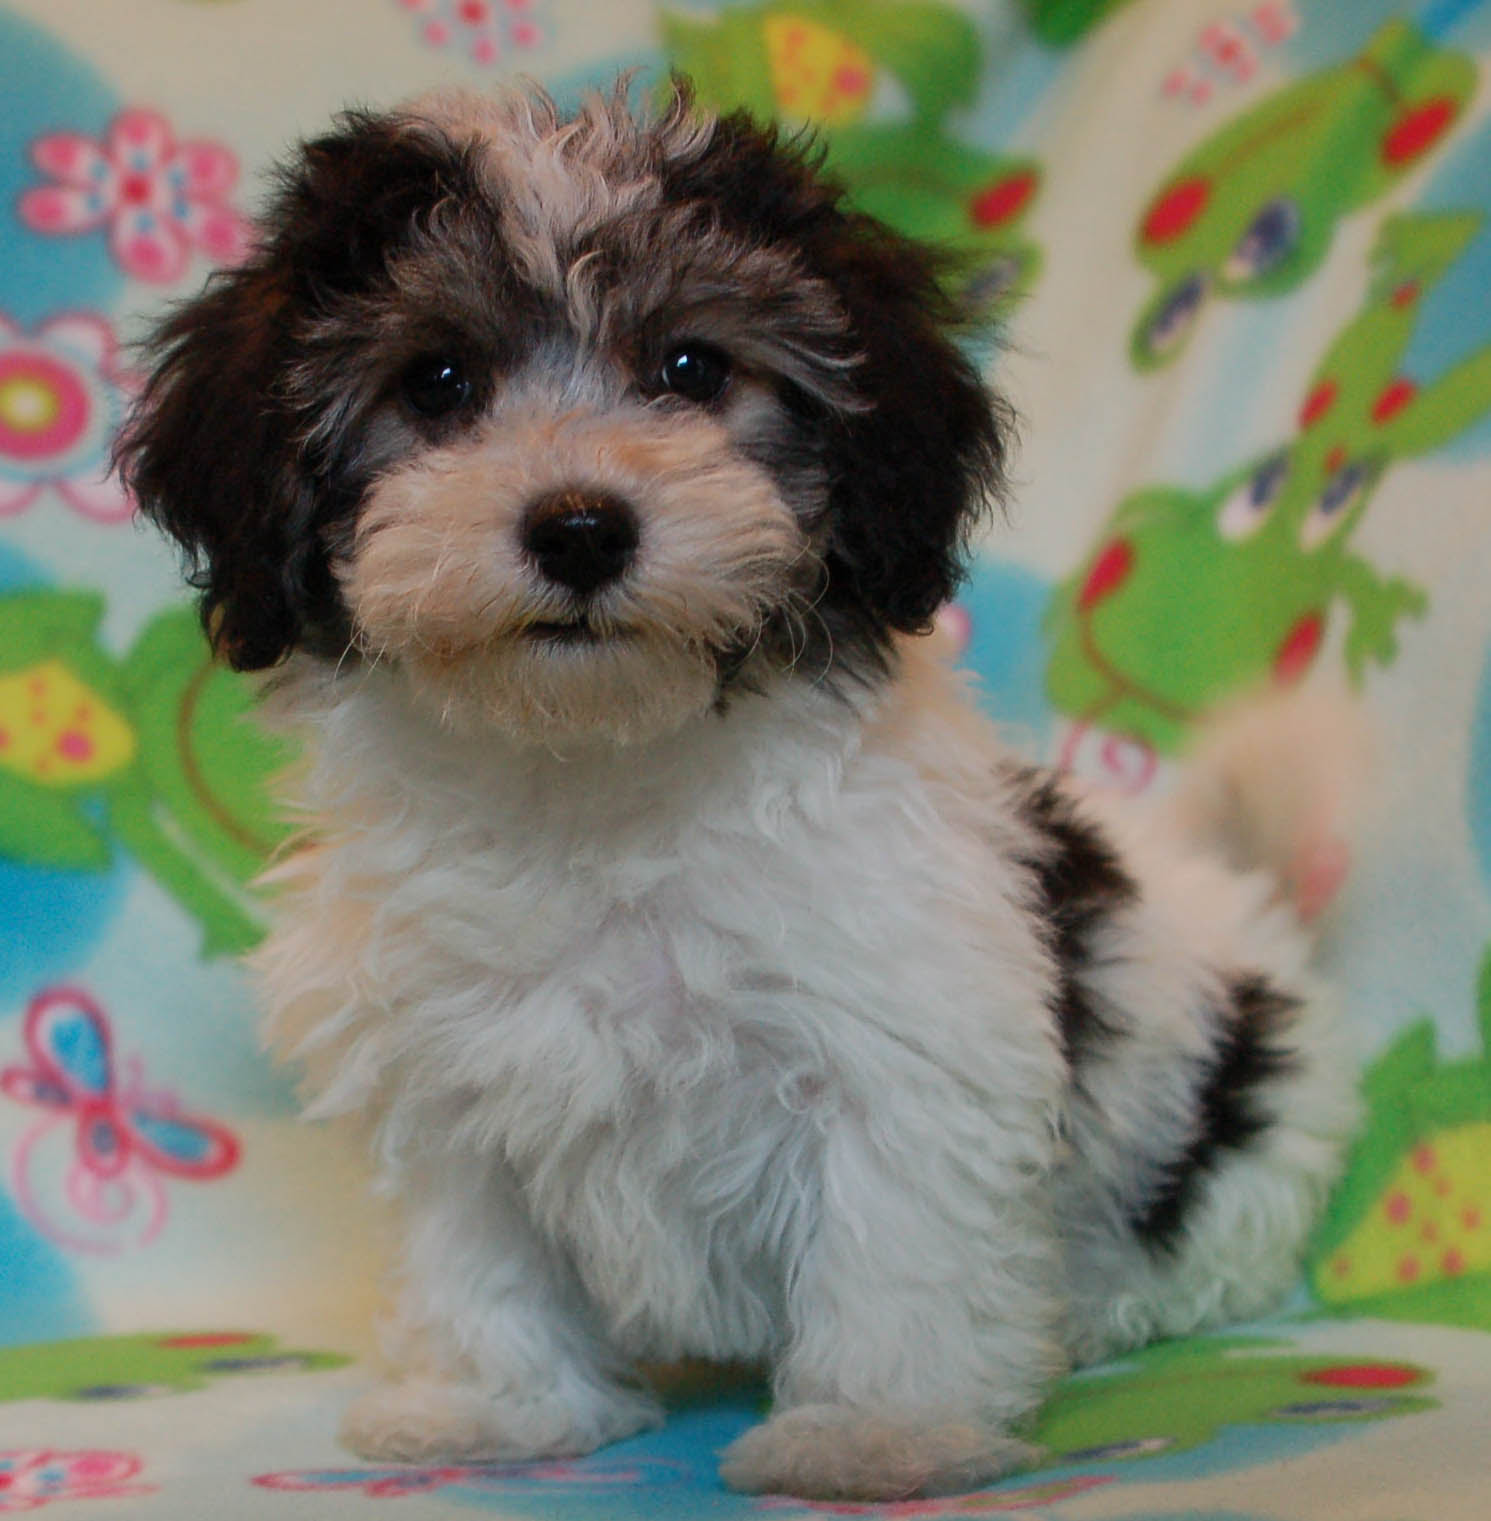 Royal Flush Havanese Reveals The Truth About Dogs and Air Travel